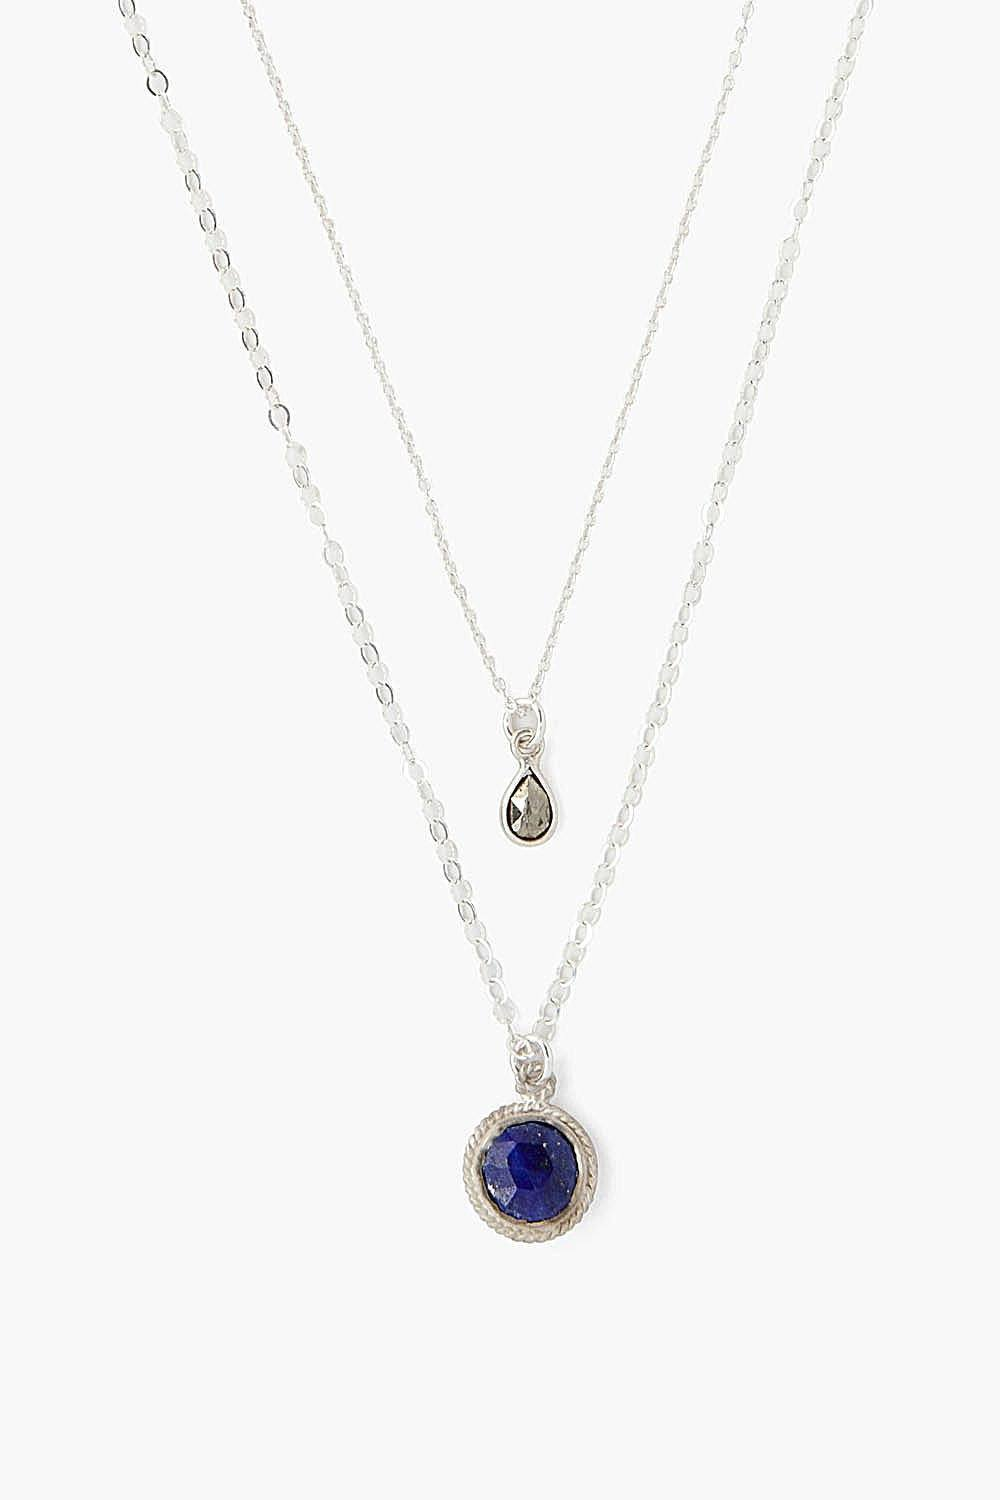 Lapis Mix Pendant Layered Necklace - Jaffi's